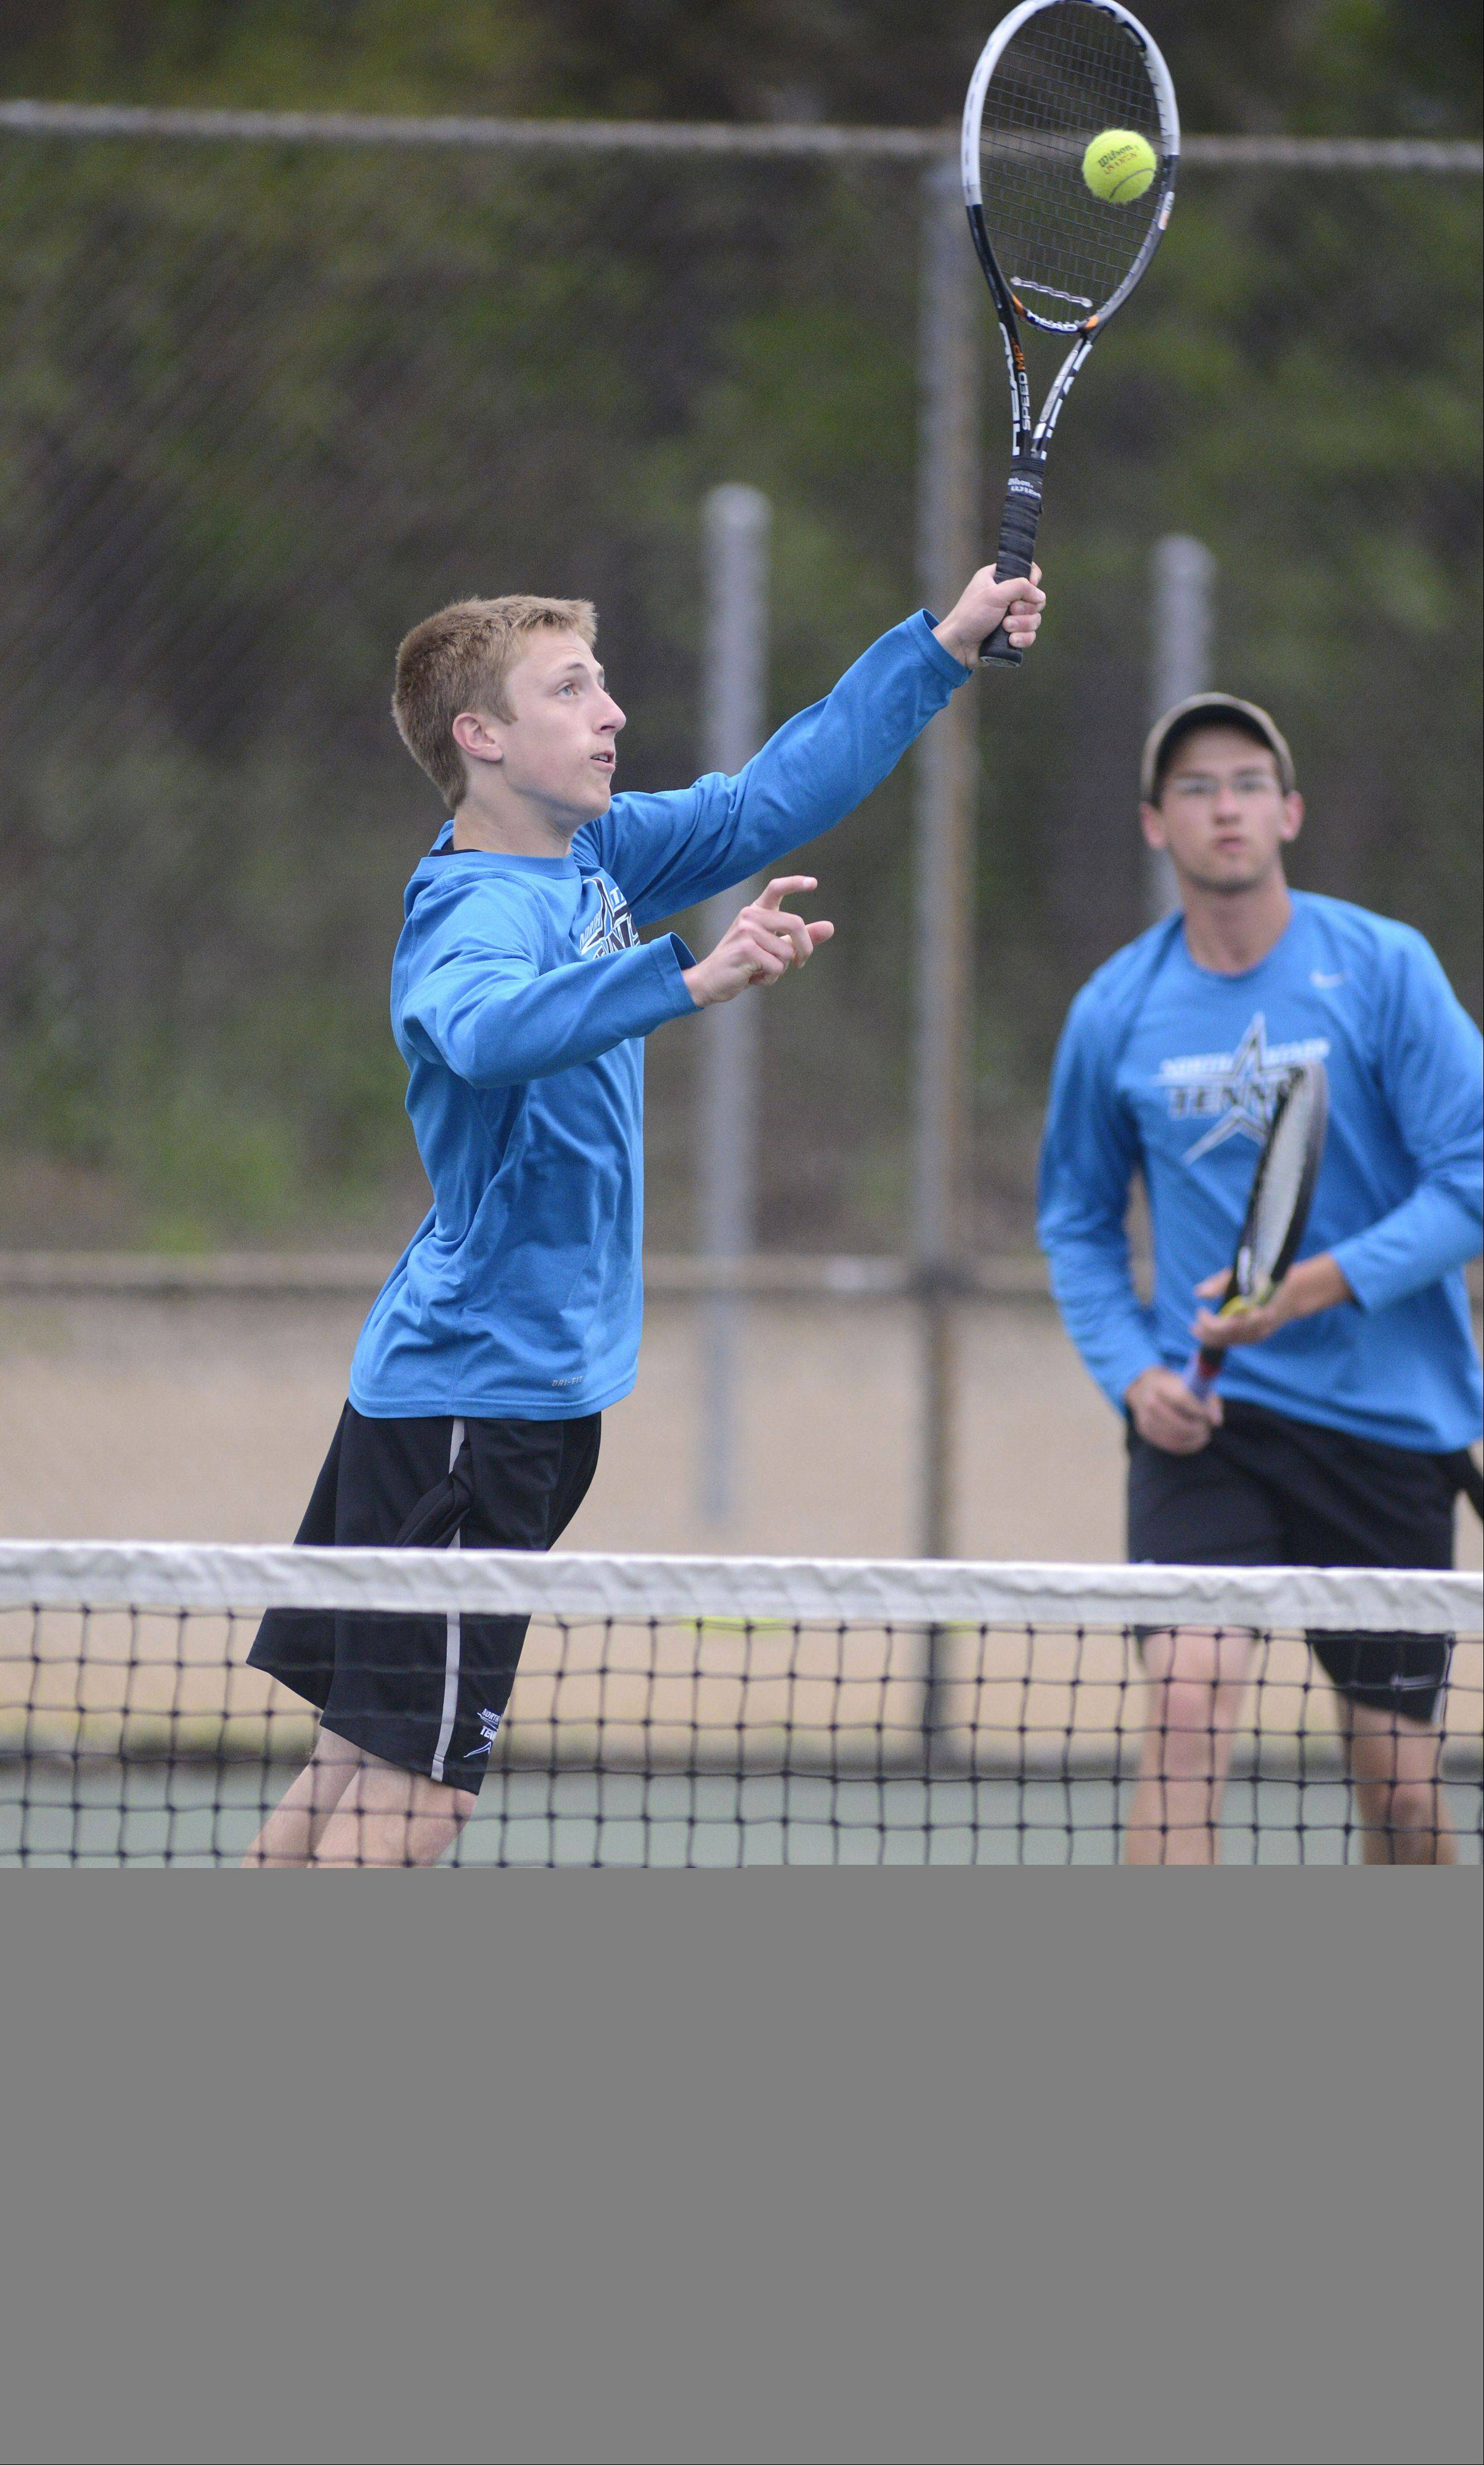 St. Charles North's Keith Hedges returns a hit from Batavia in the first place, first doubles match with teammate Grant Spellman in the Upstate Eight Conference at Elgin High School on Saturday, May 11.